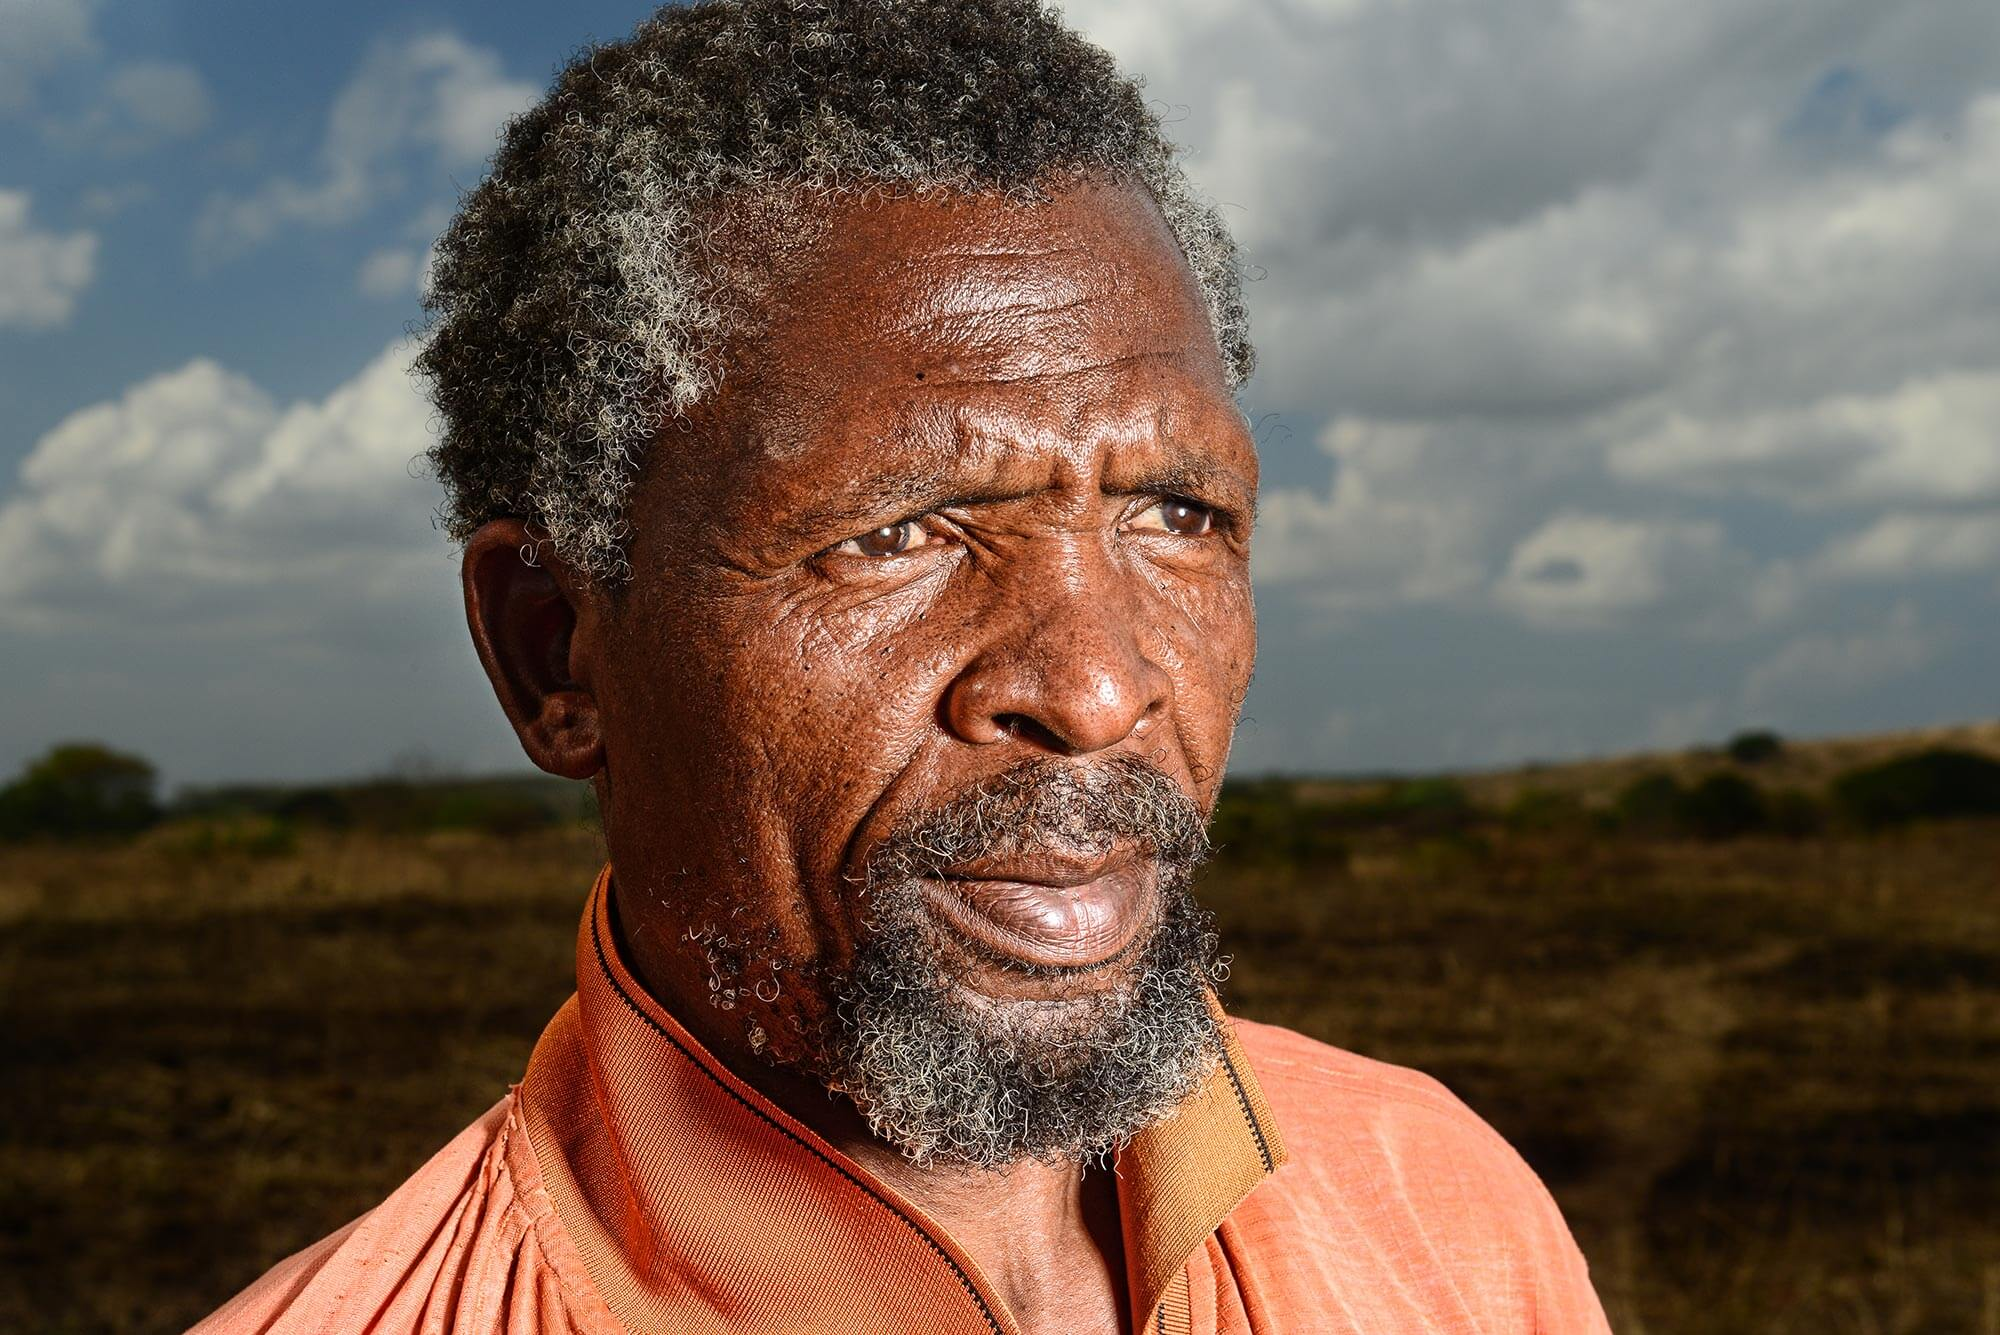 south-african-rural-farmer-portrait-photography-brandon-barnard.jpg